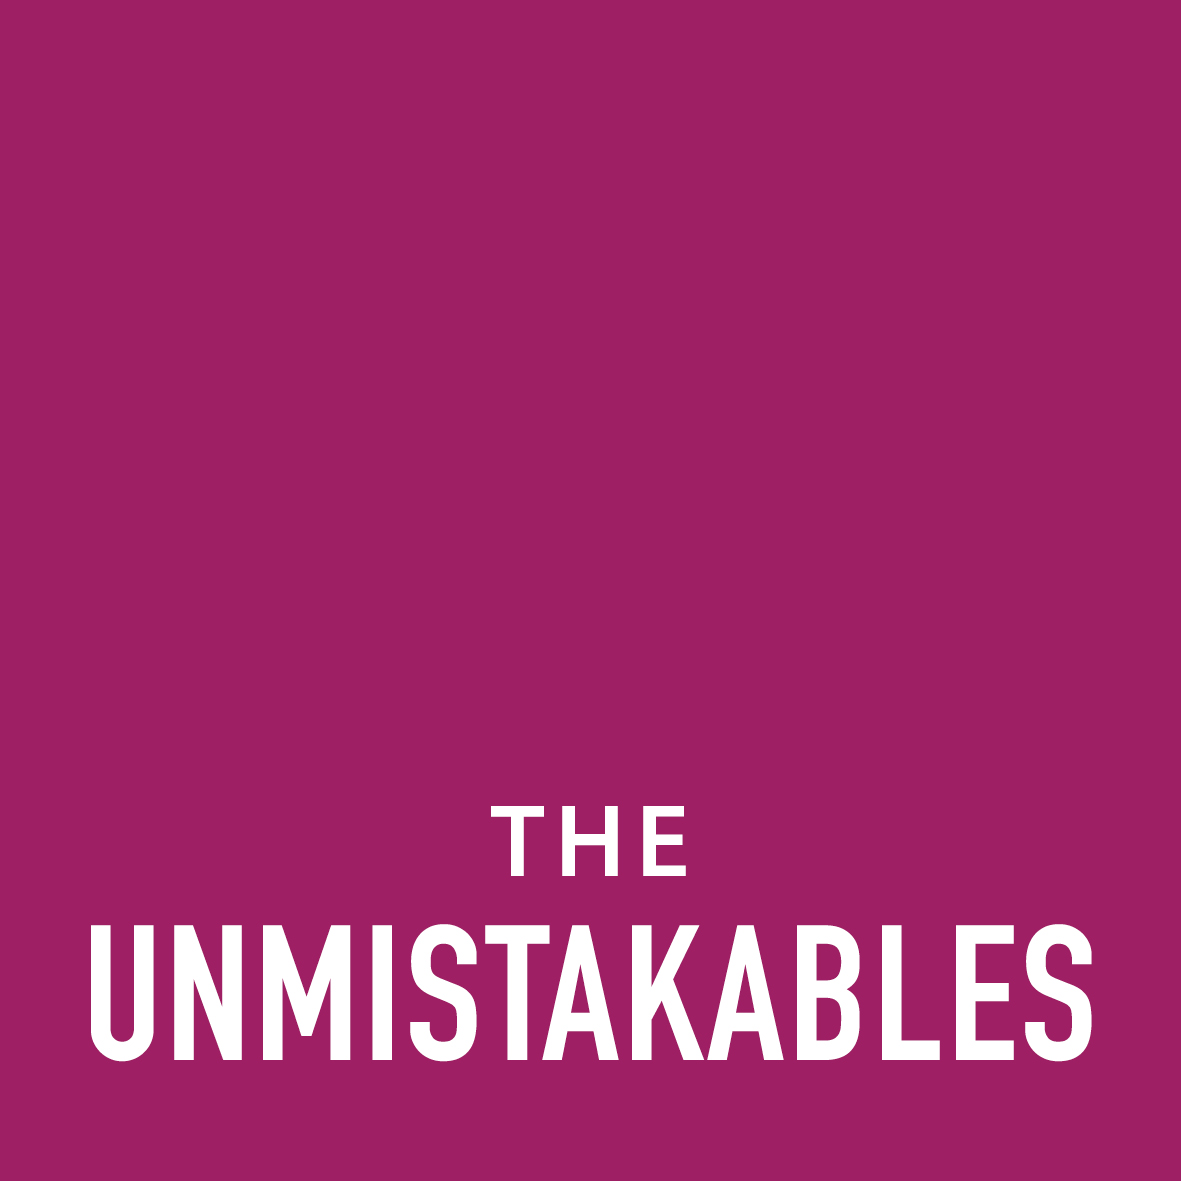 The Unmistakables | Make a Difference